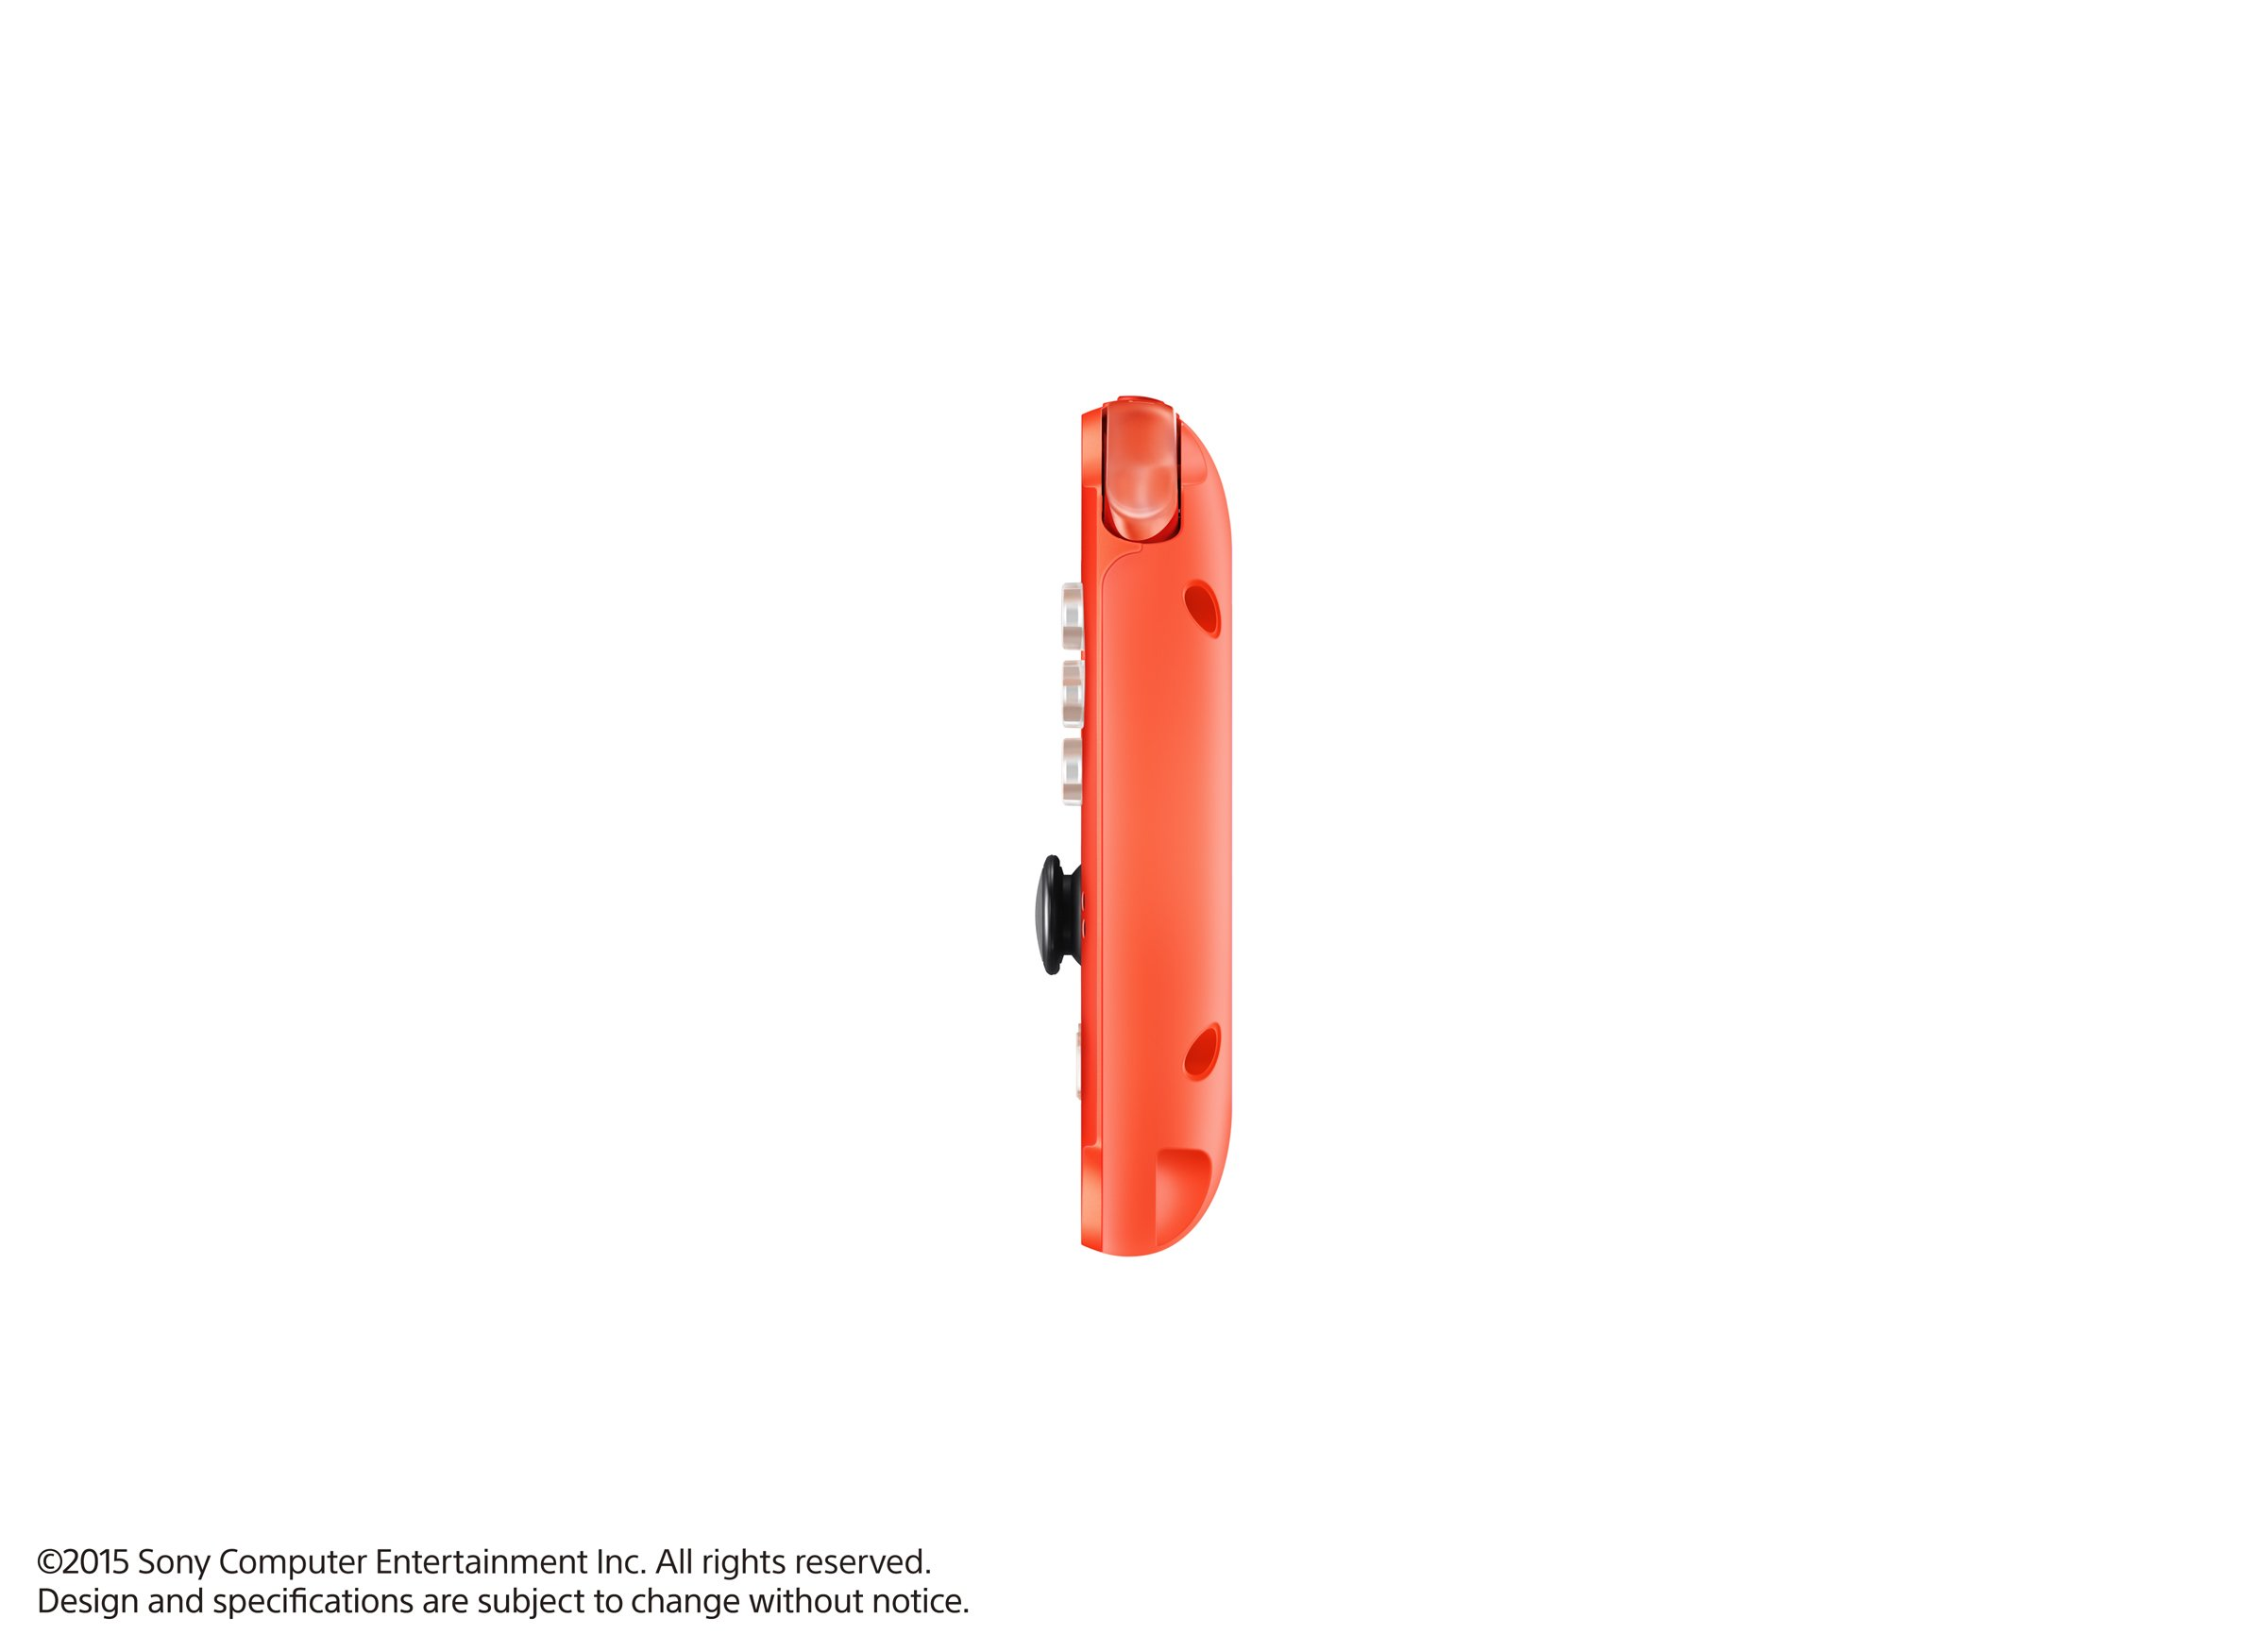 PlayStation Vita Wi-Fi model Neon Orange (PCH-2000ZA24) Japanese Ver. Japan Import by Sony (Image #6)